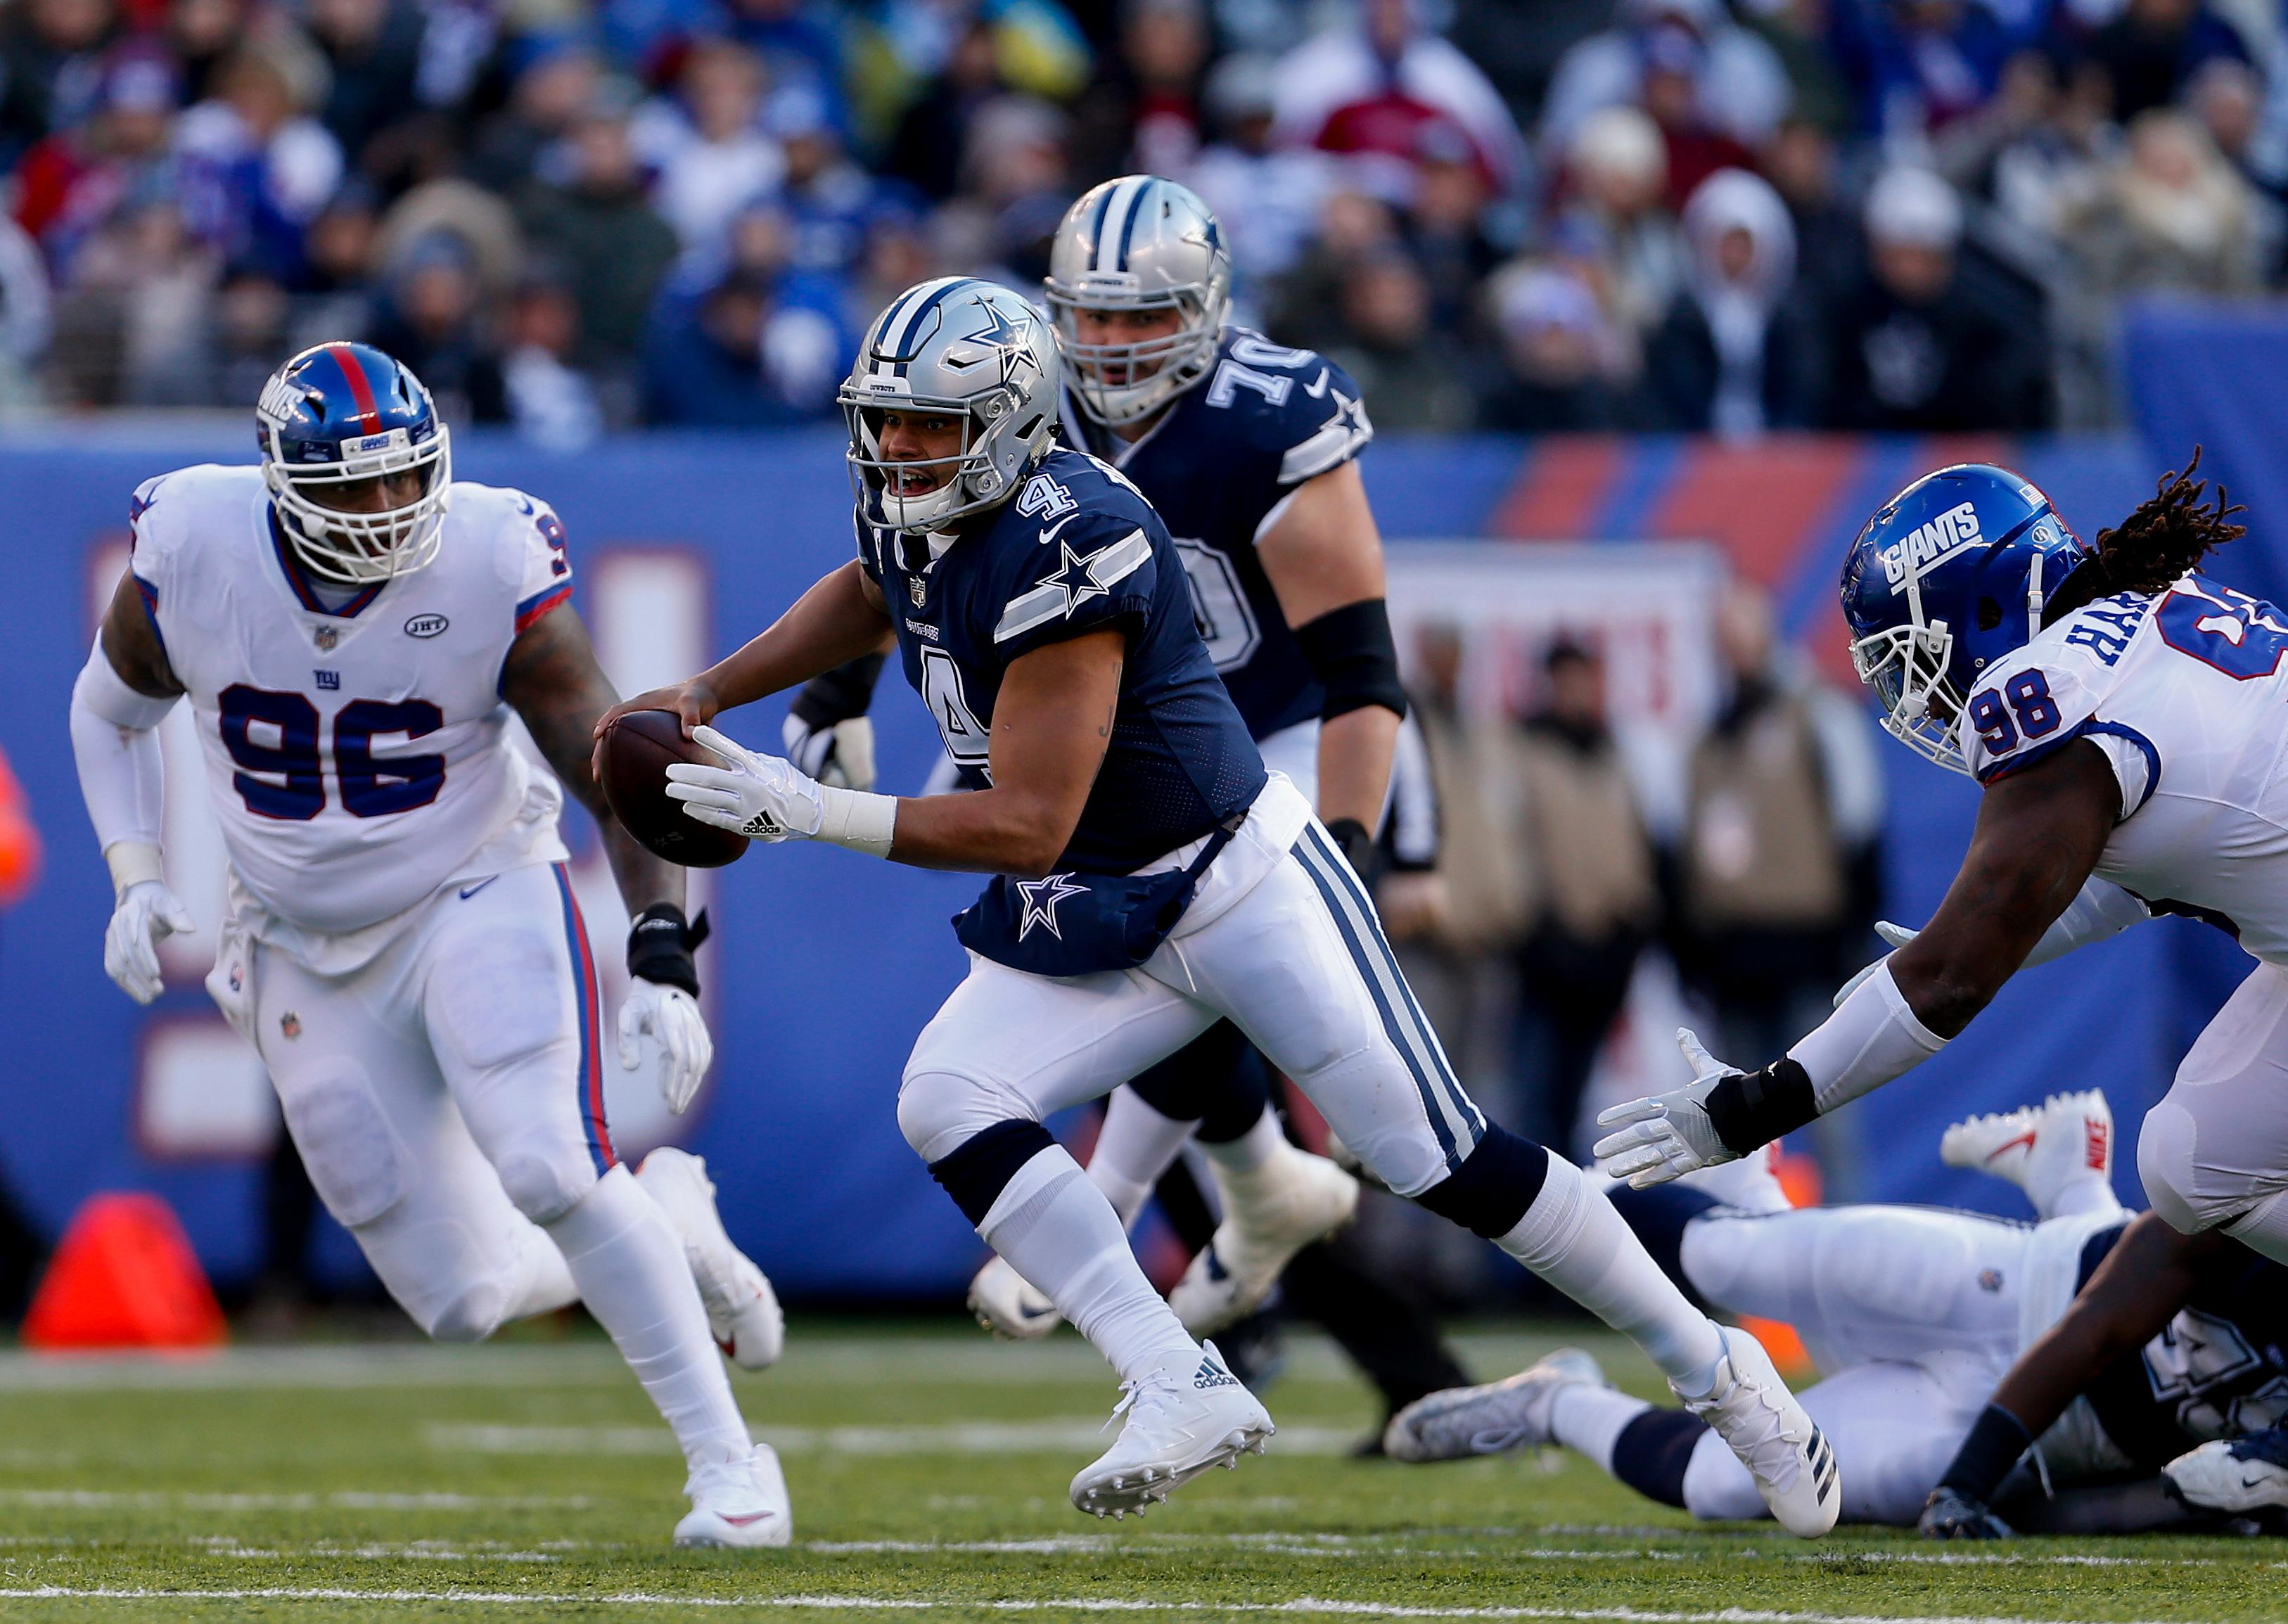 Dallas Cowboys quarterback Dak Prescott (4) runs the ball against the New York Giants during the second quarter of an NFL football game, Sunday, Dec. 10, 2017, in East Rutherford, N.J. (AP Photo/Adam Hunger)